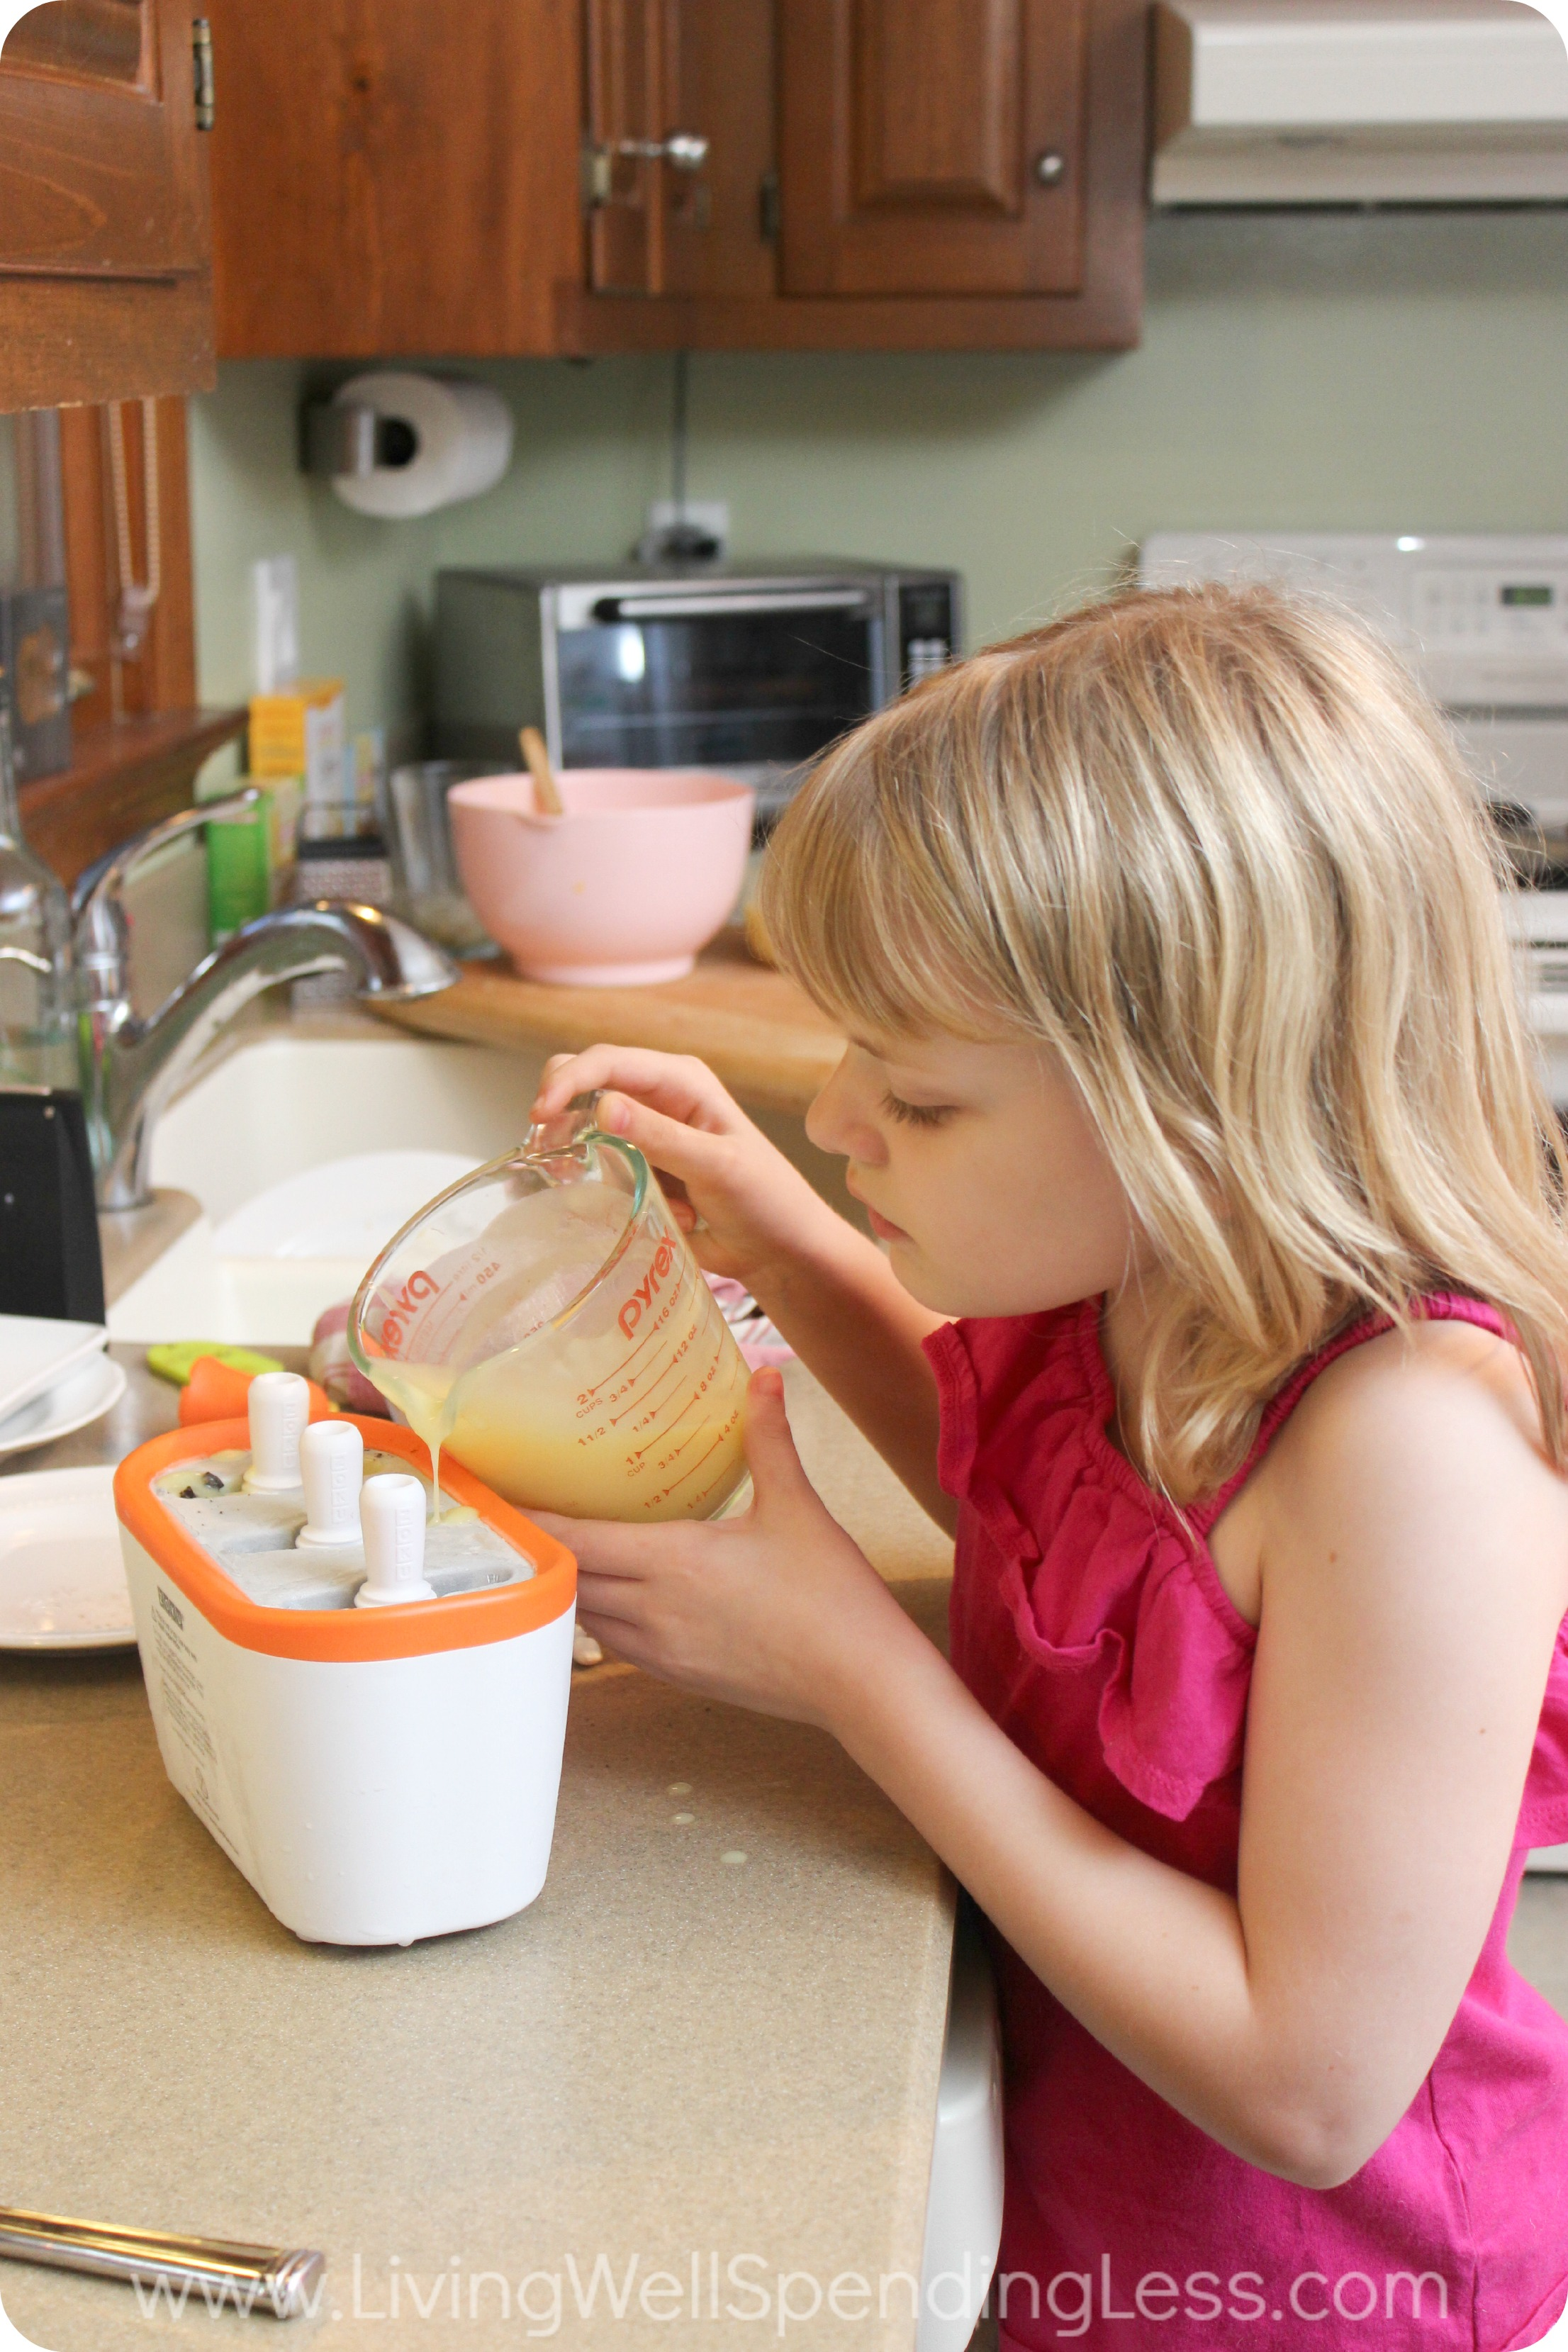 Kids love creating their own yummy treats!